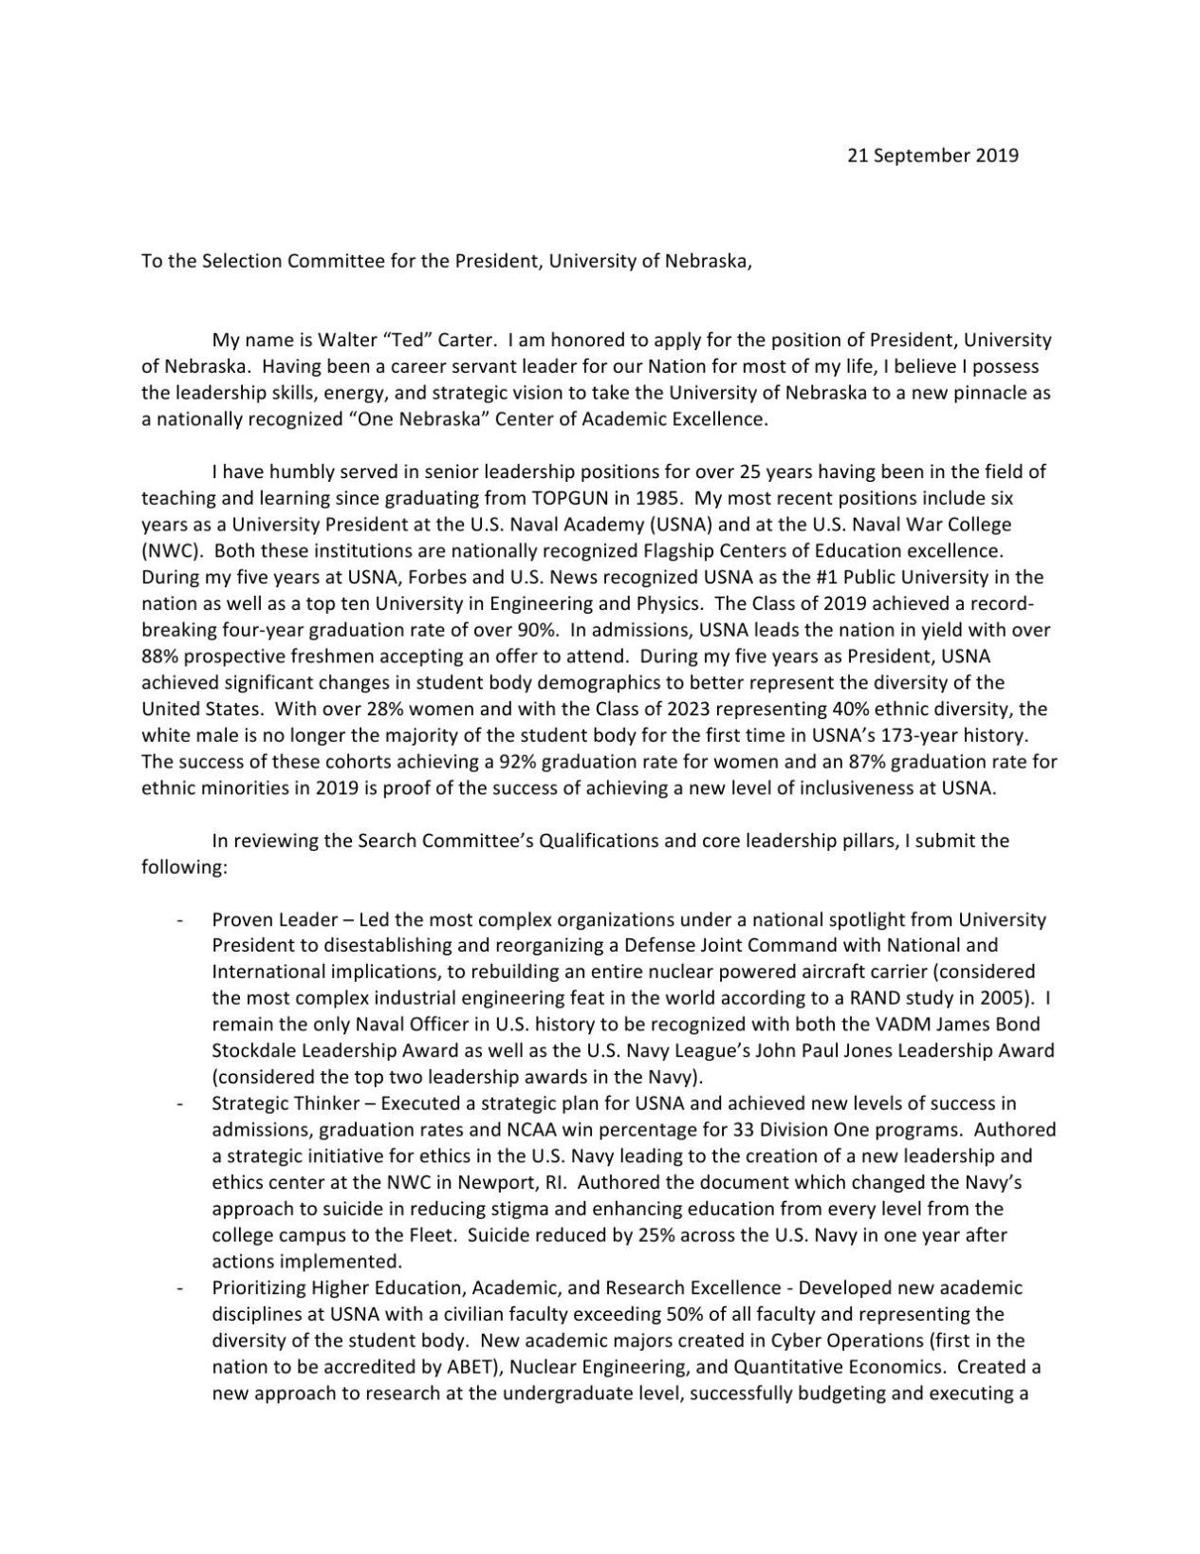 PDF: Read Ted Carter's letter of application